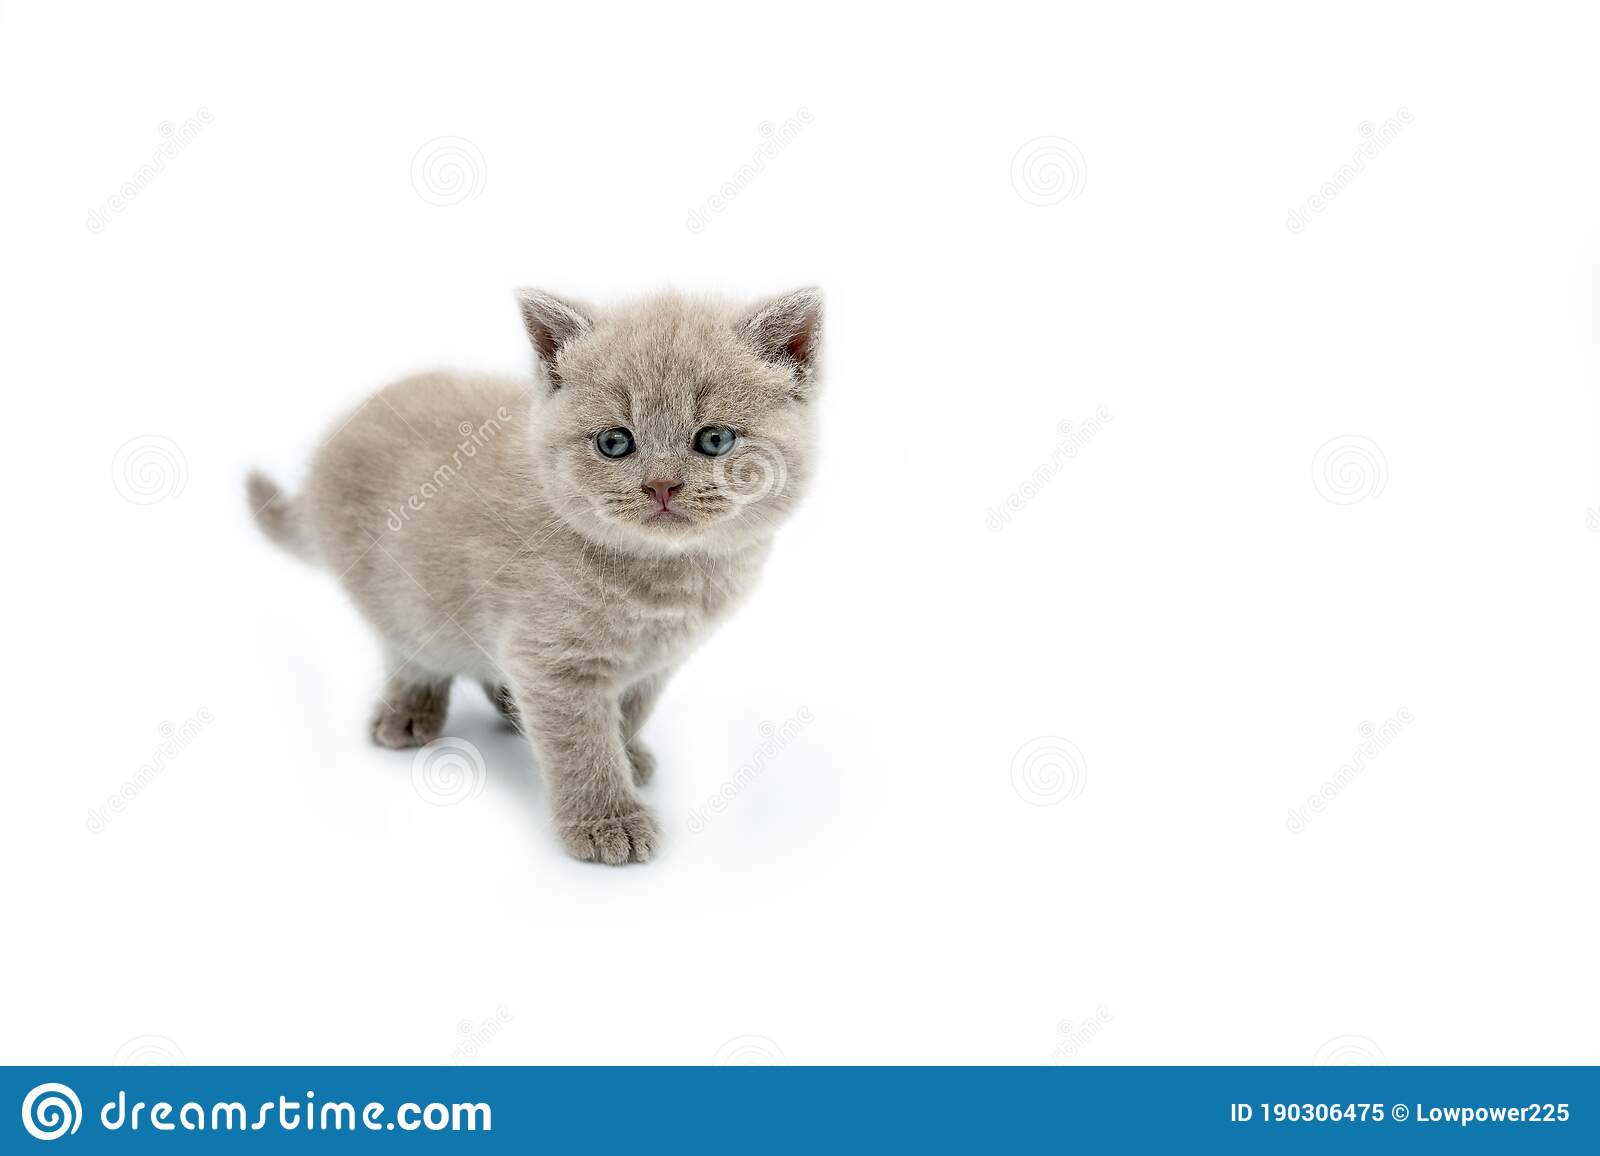 British Shorthair Lilac Cat Cute And Beautiful Kitten Standing And Looking Straight On A White Background Stock Image Image Of Animal Gray 190306475